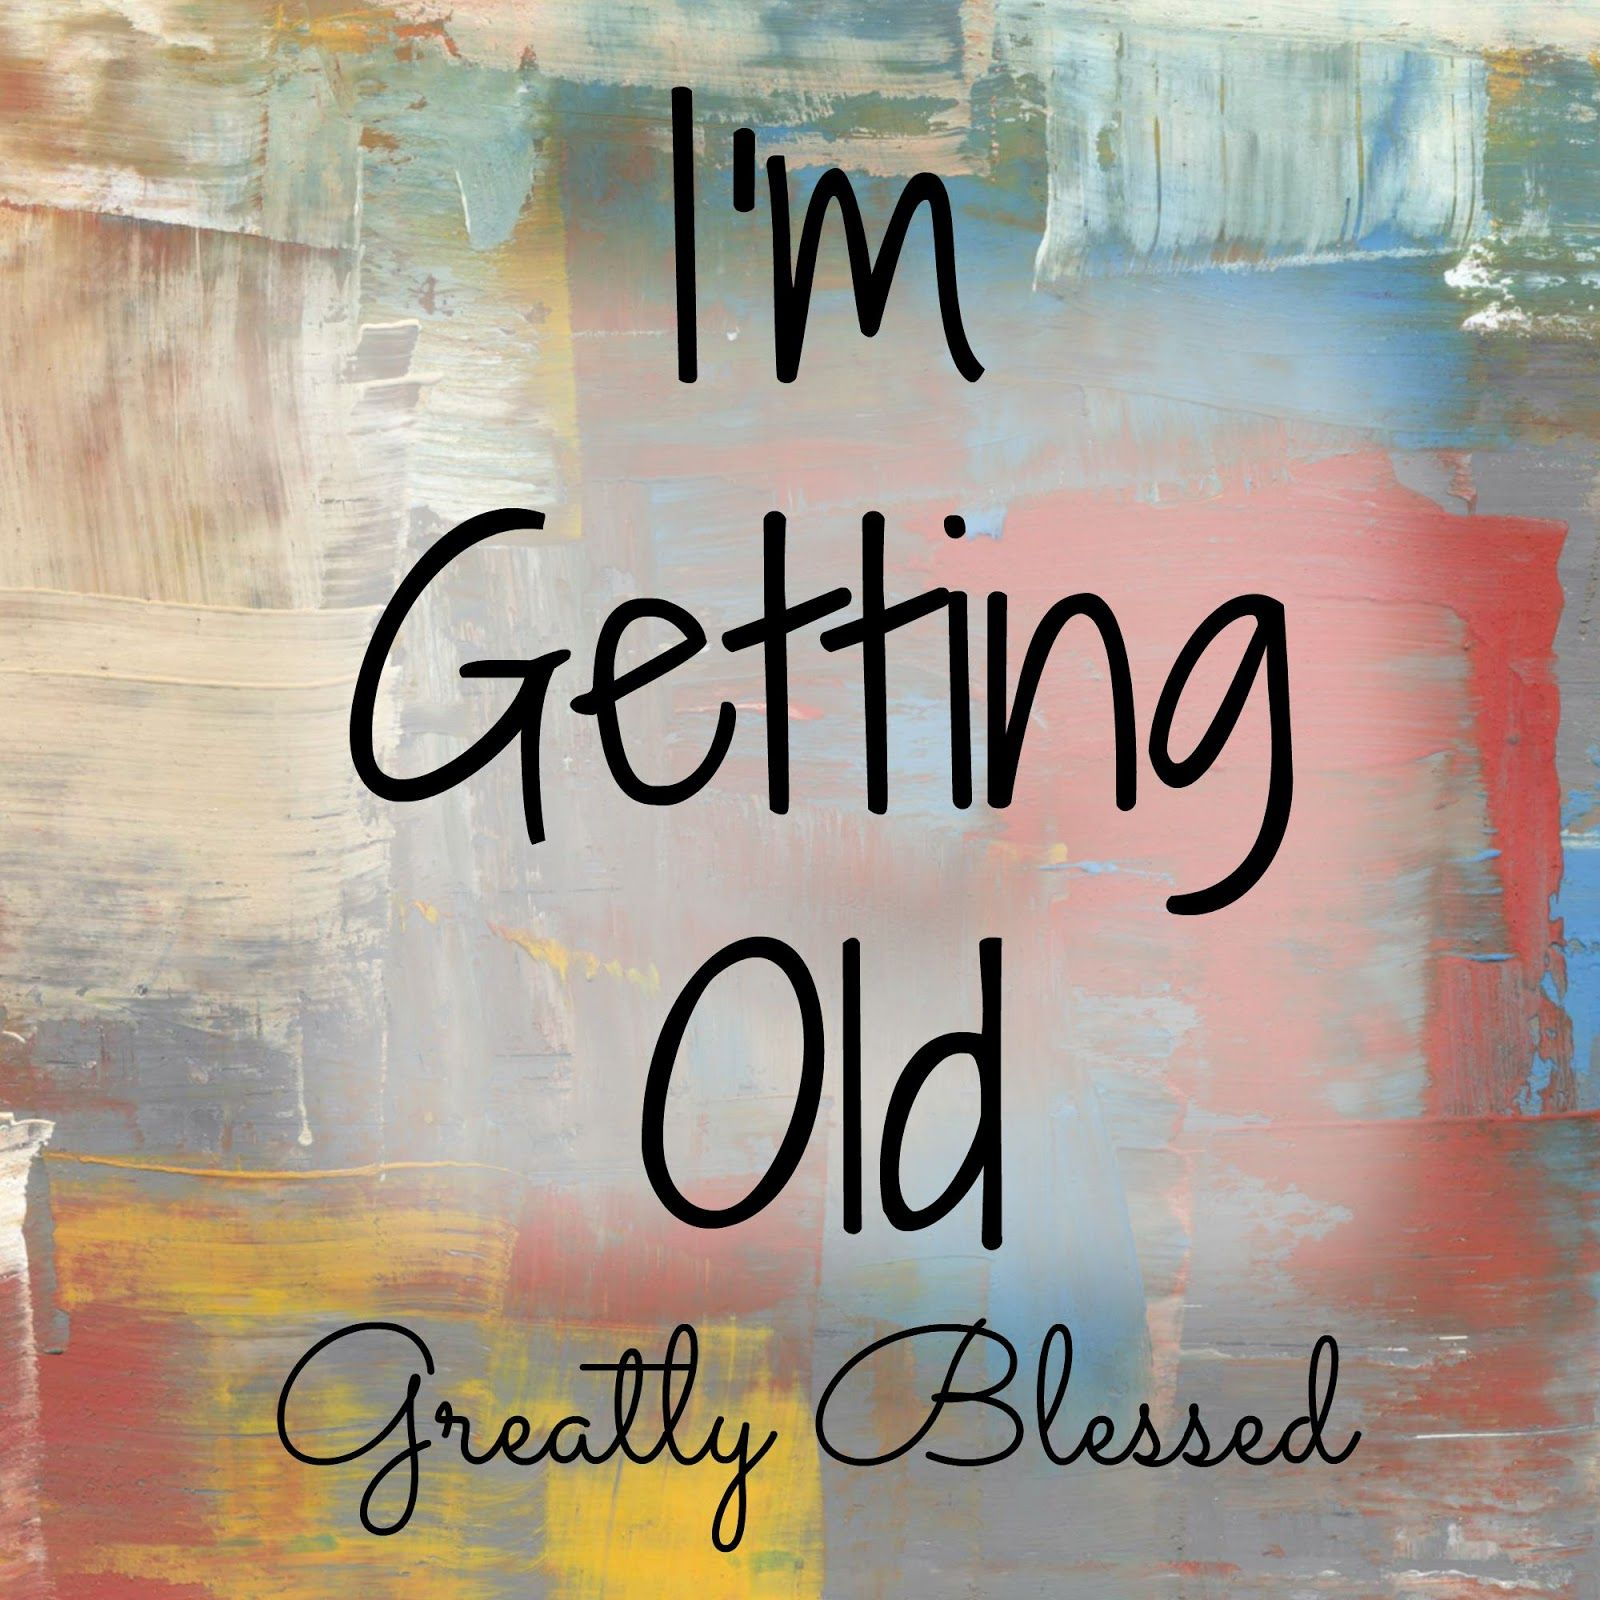 Greatly Blessed: I'm Getting Old